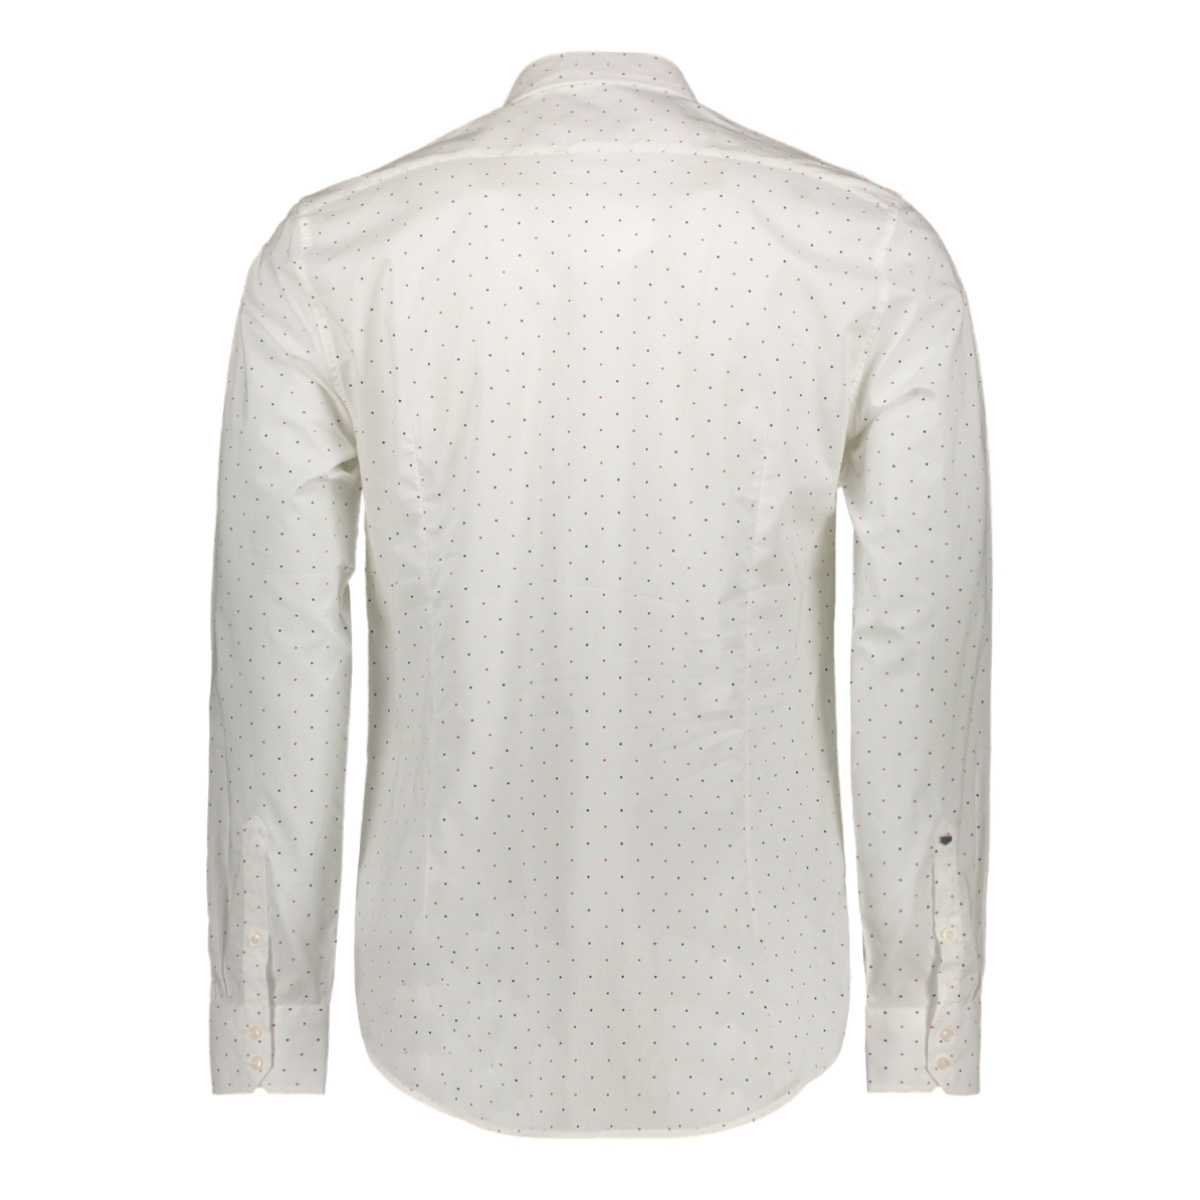 shirt long sleeves mmsl00587 antony morato overhemd 1000 white dots